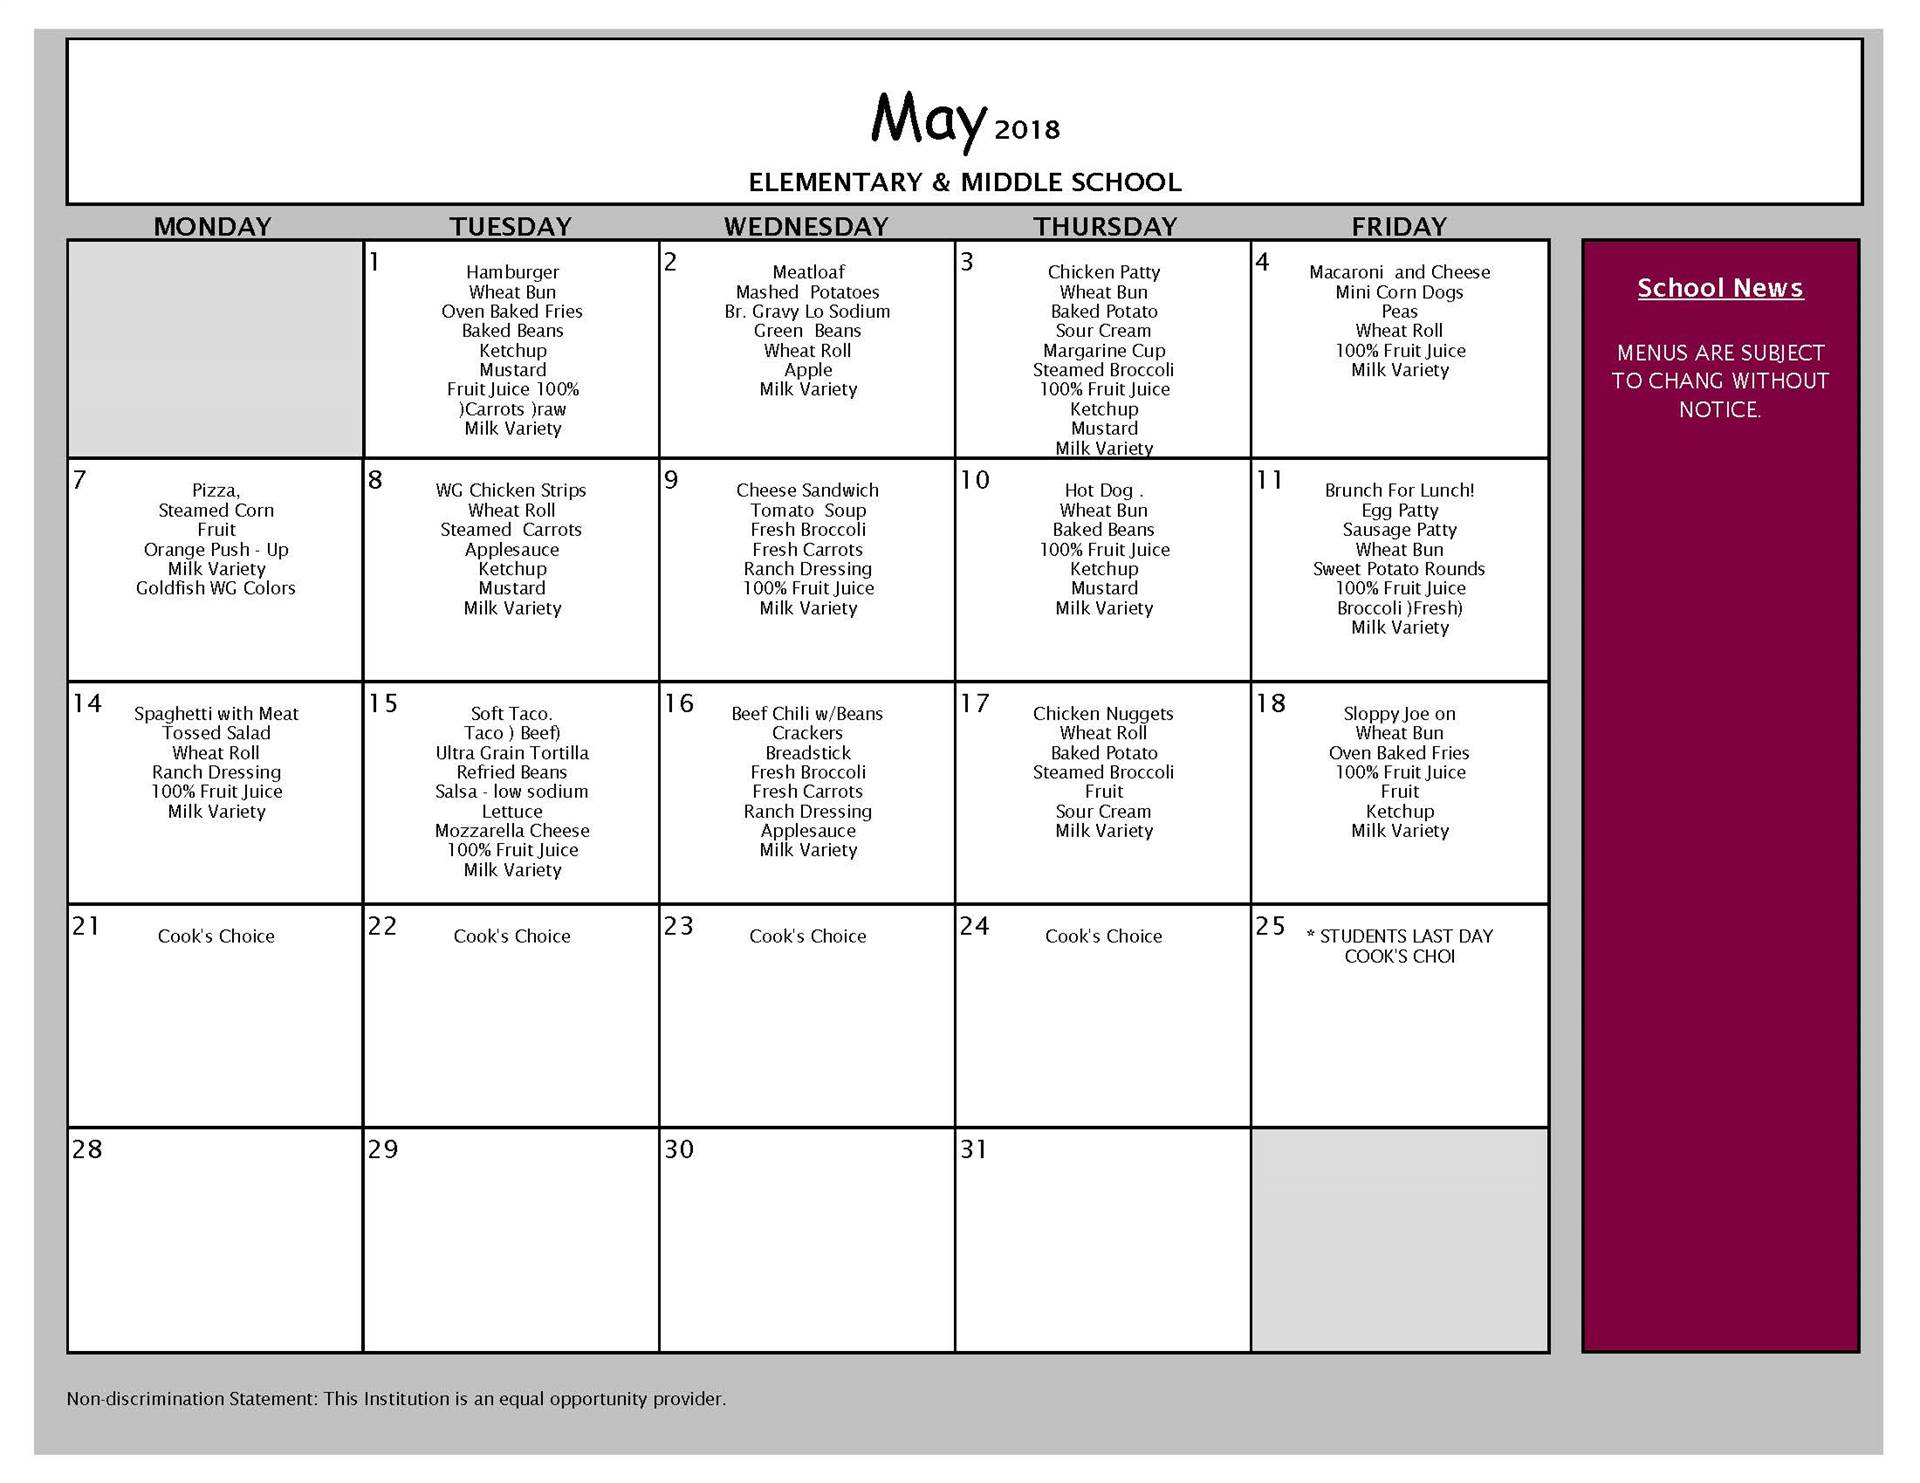 May Lunch Menu - Middle School and Elementary